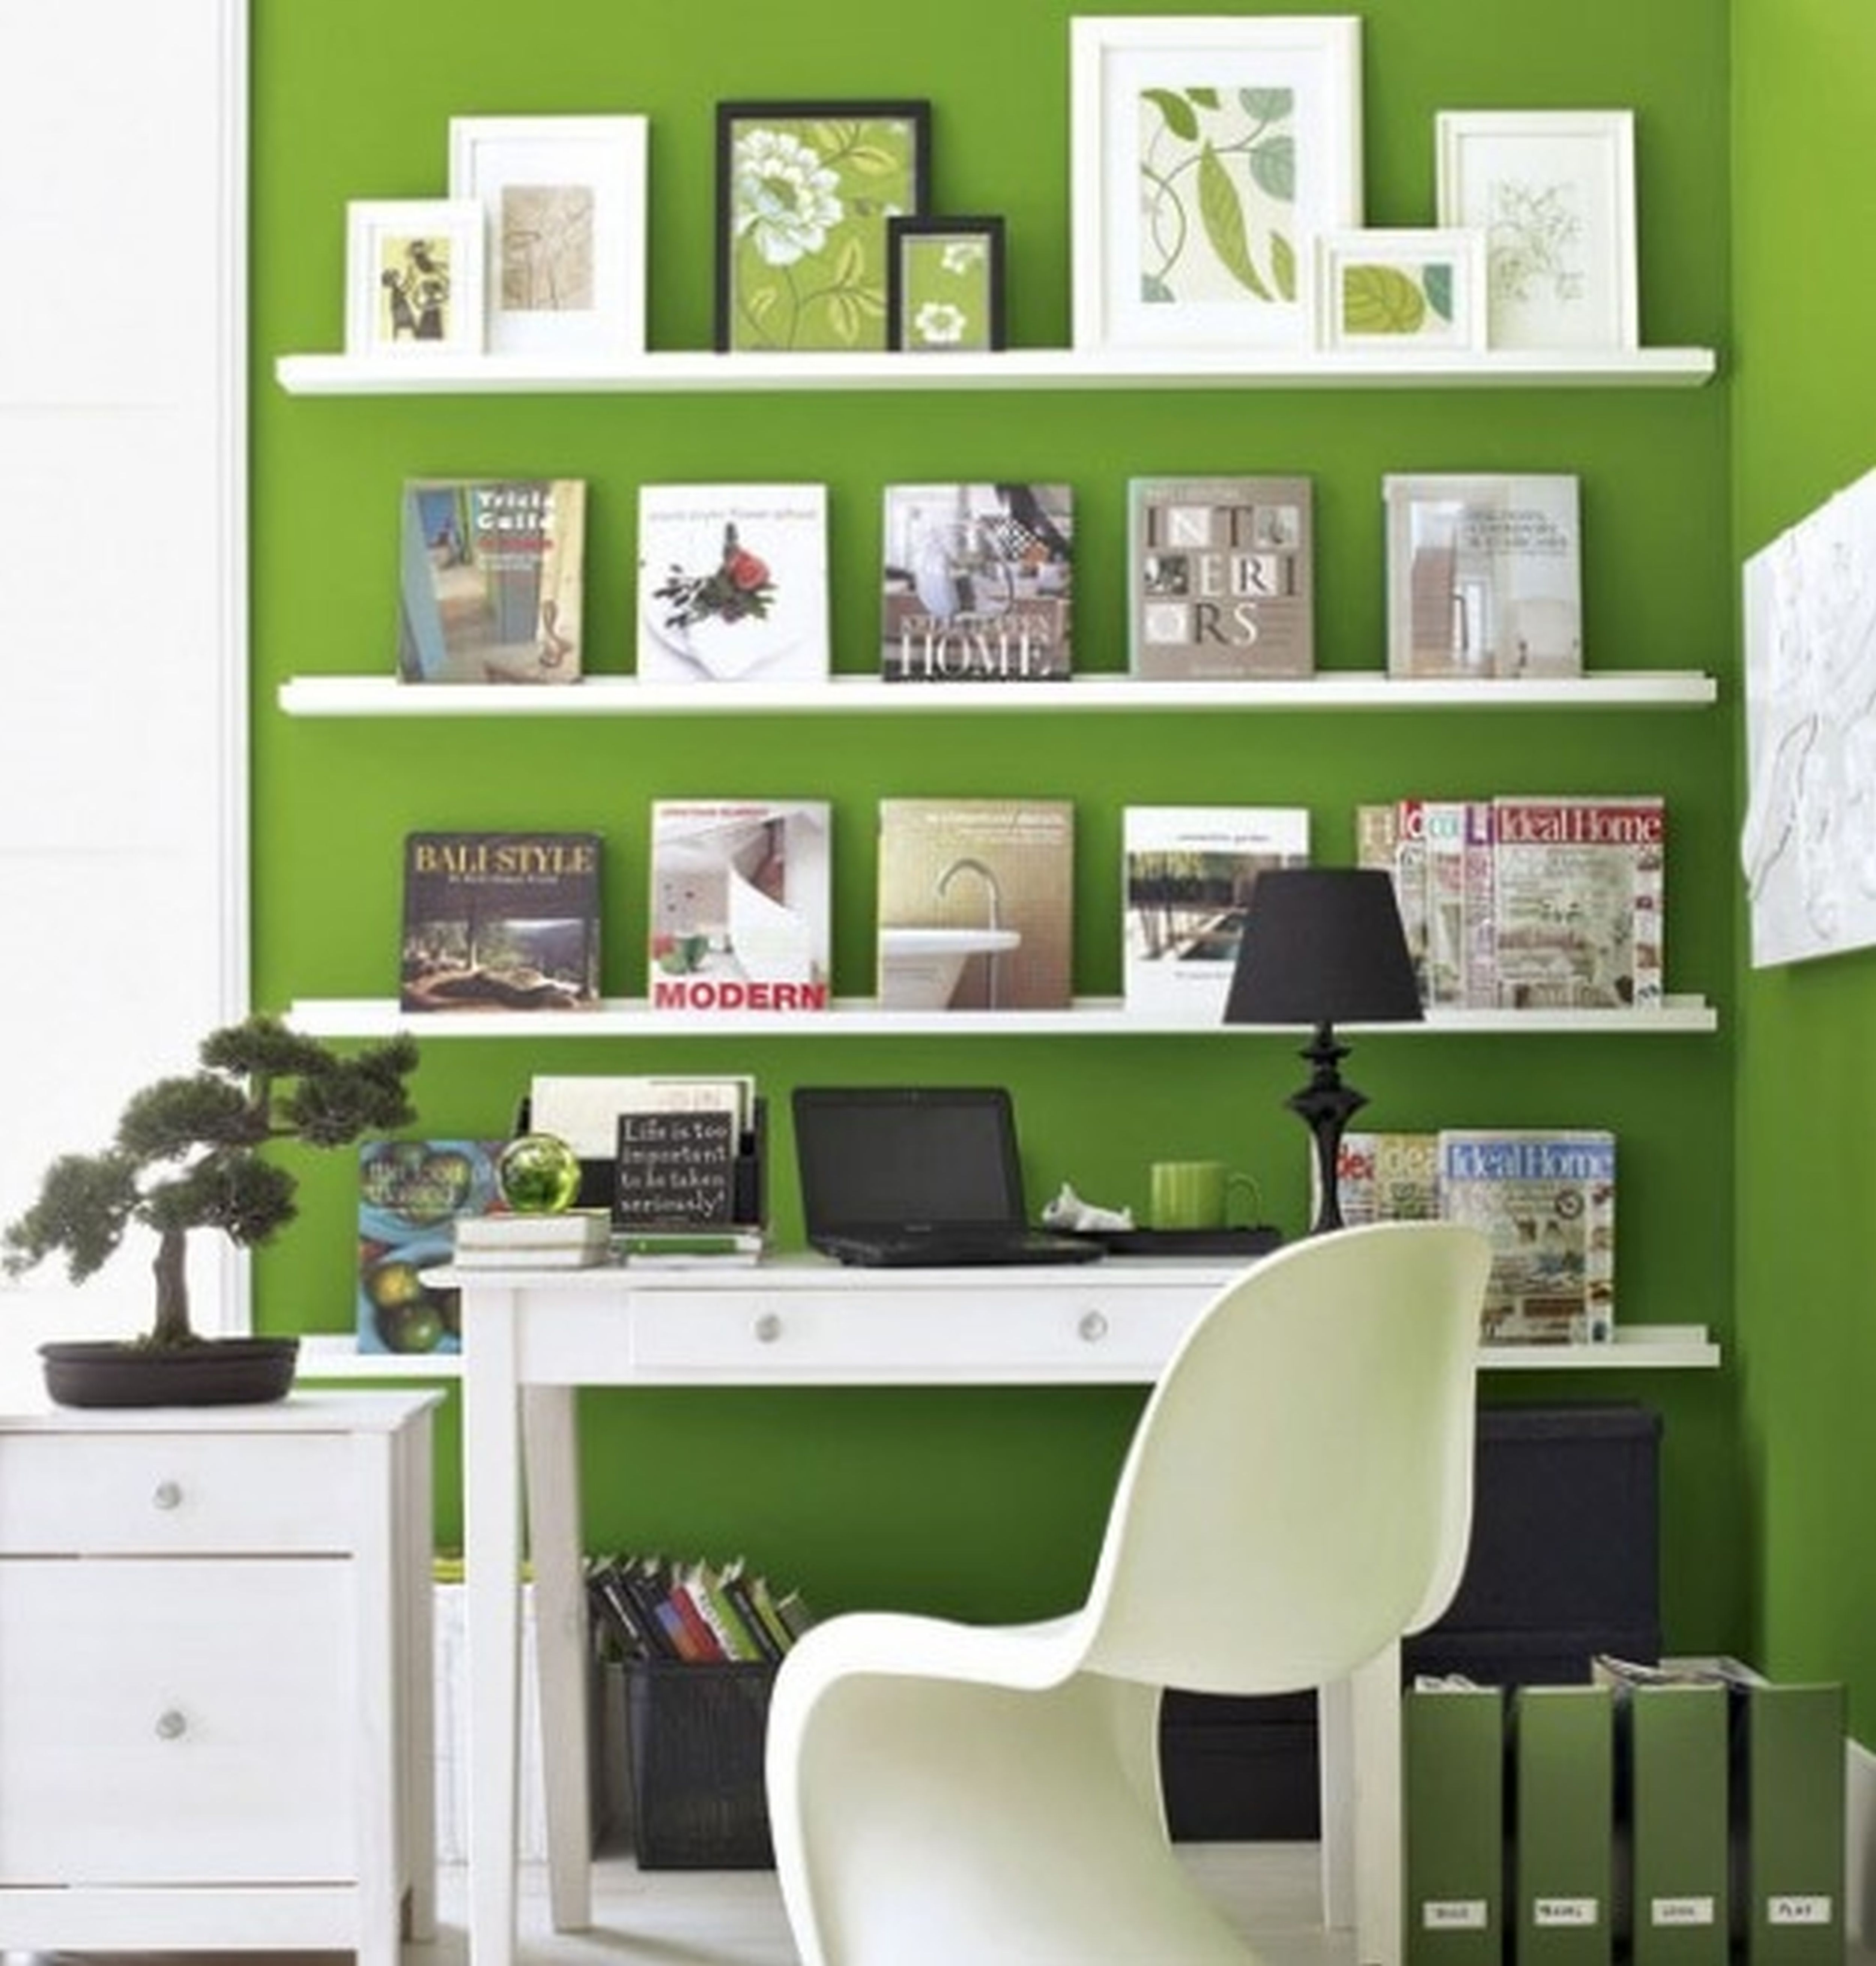 Combine Green Wall and White Wall Shelves for Open Office Decor Ideas with Black Table Lamp